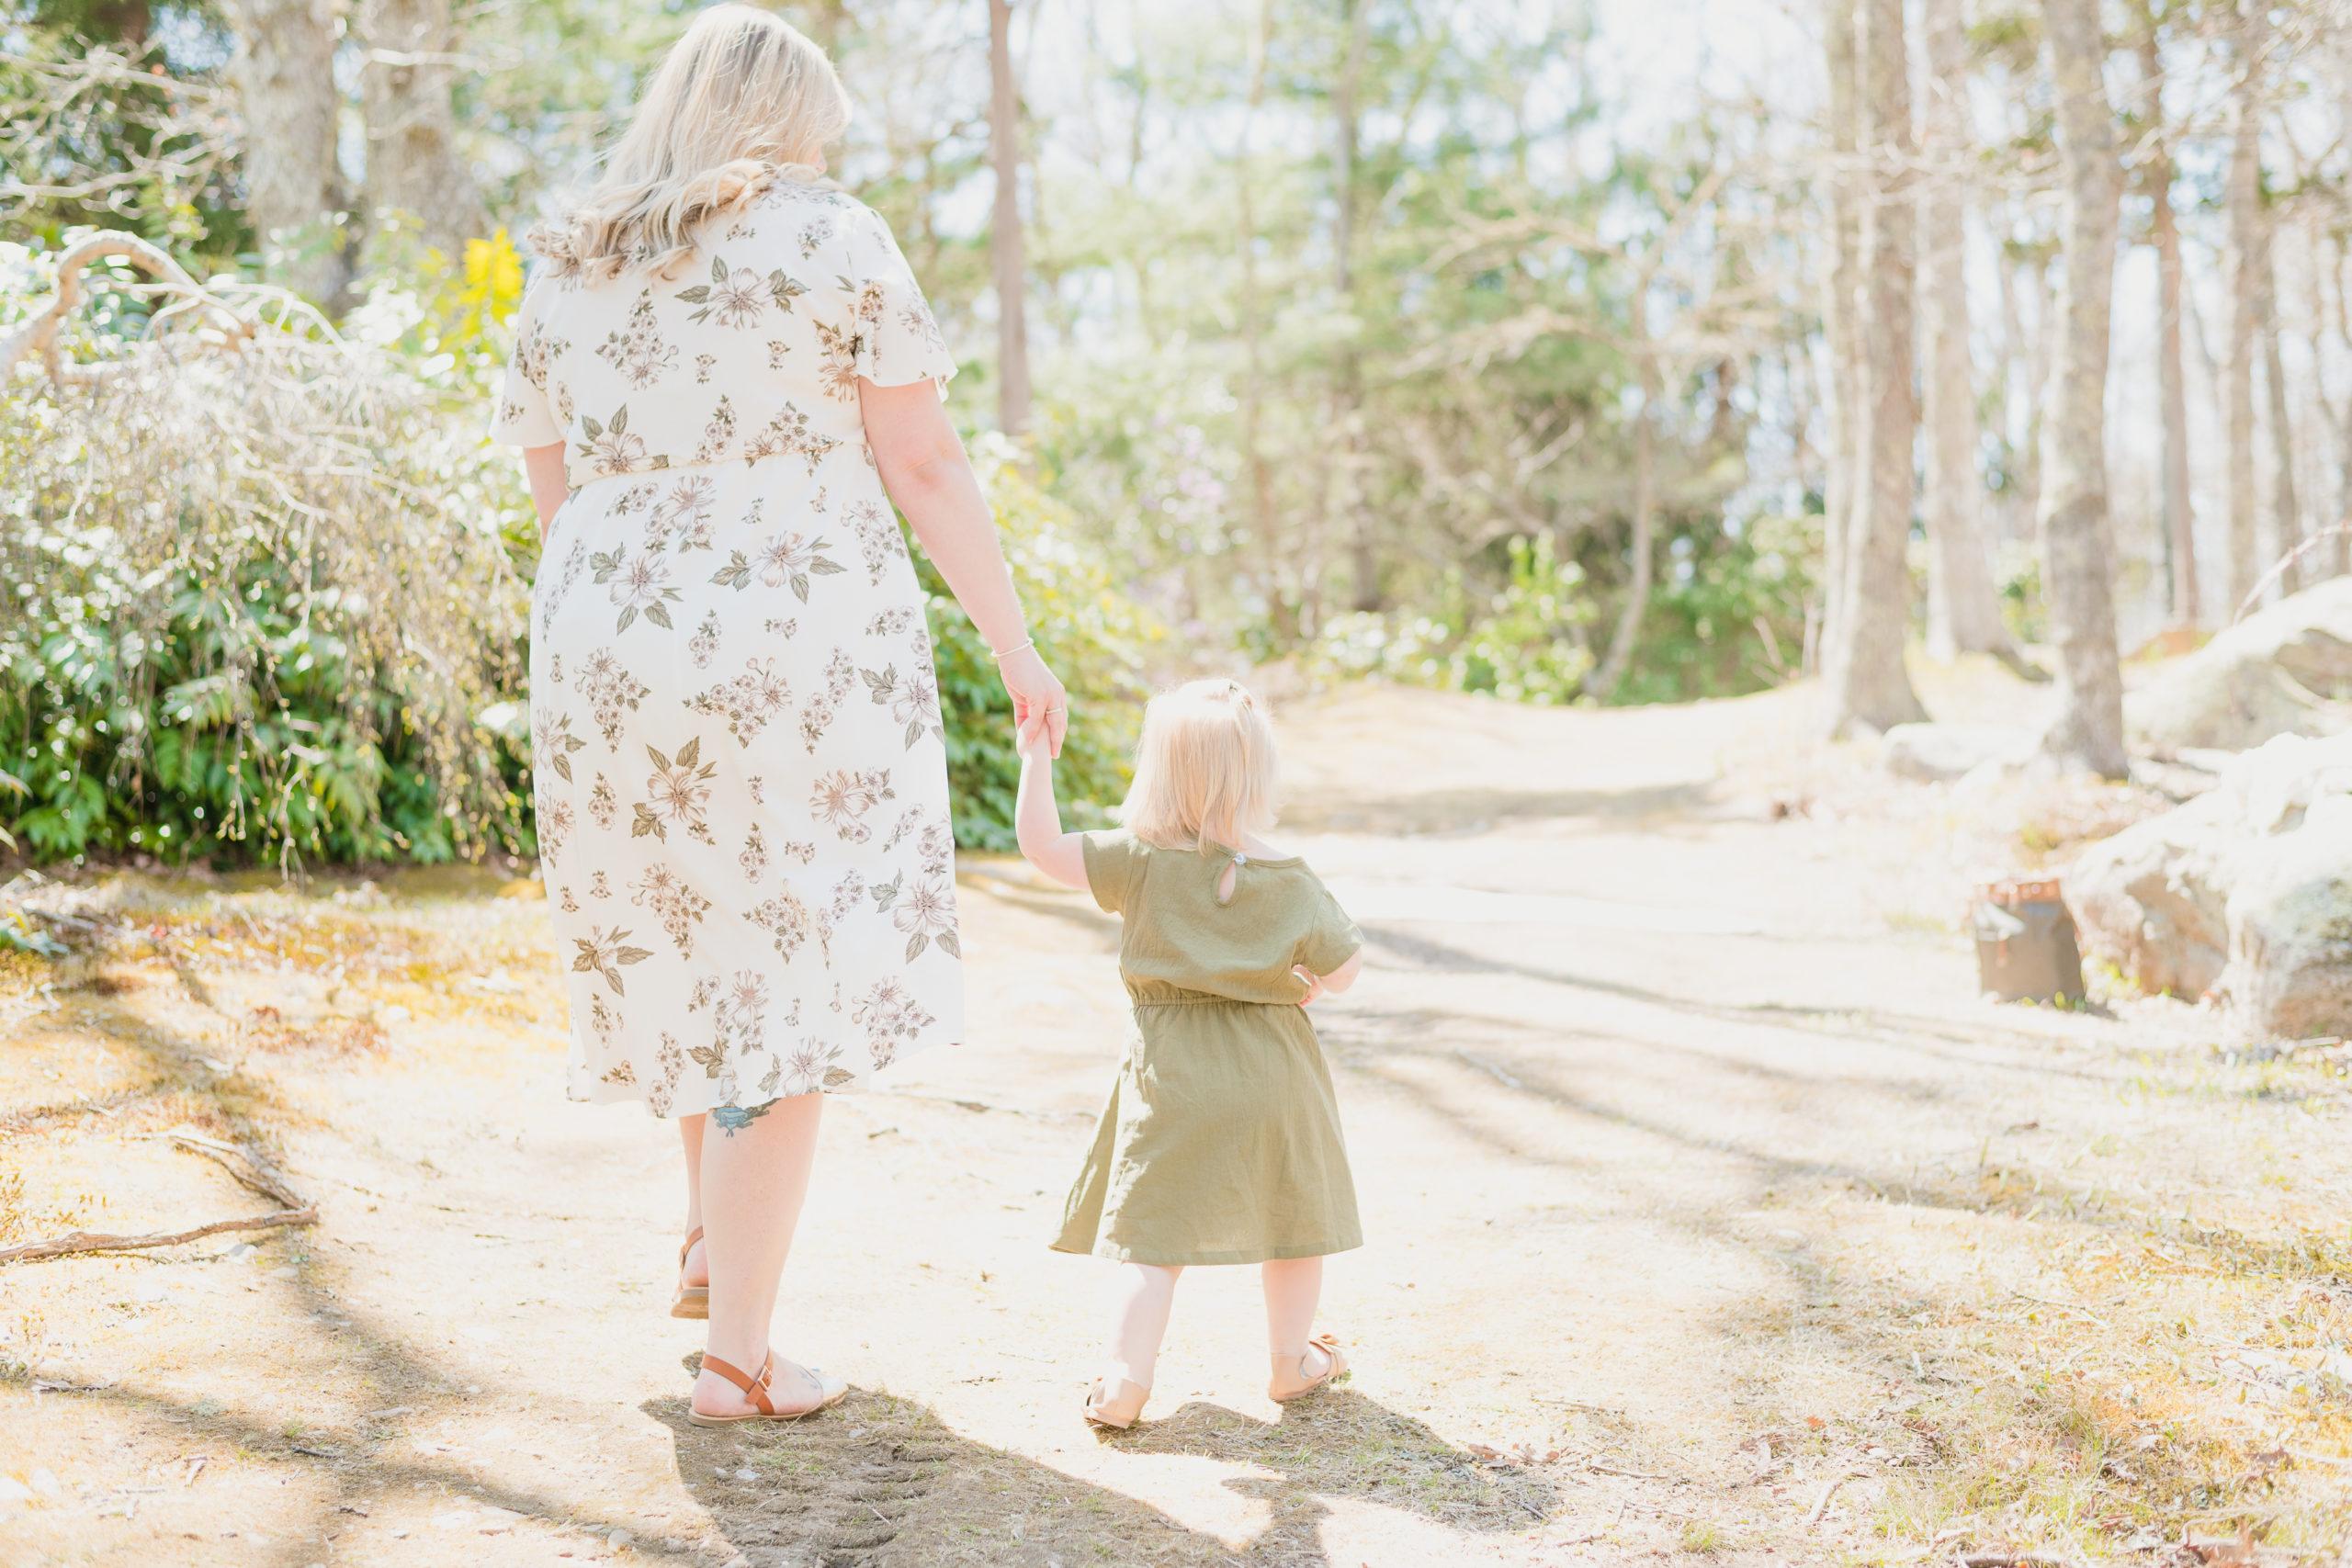 Mother and young daughter walking through Spohr Gardens wearing flowy dresses and holding hands during their mommy and me session. There is beautiful natural light coming through the trees.